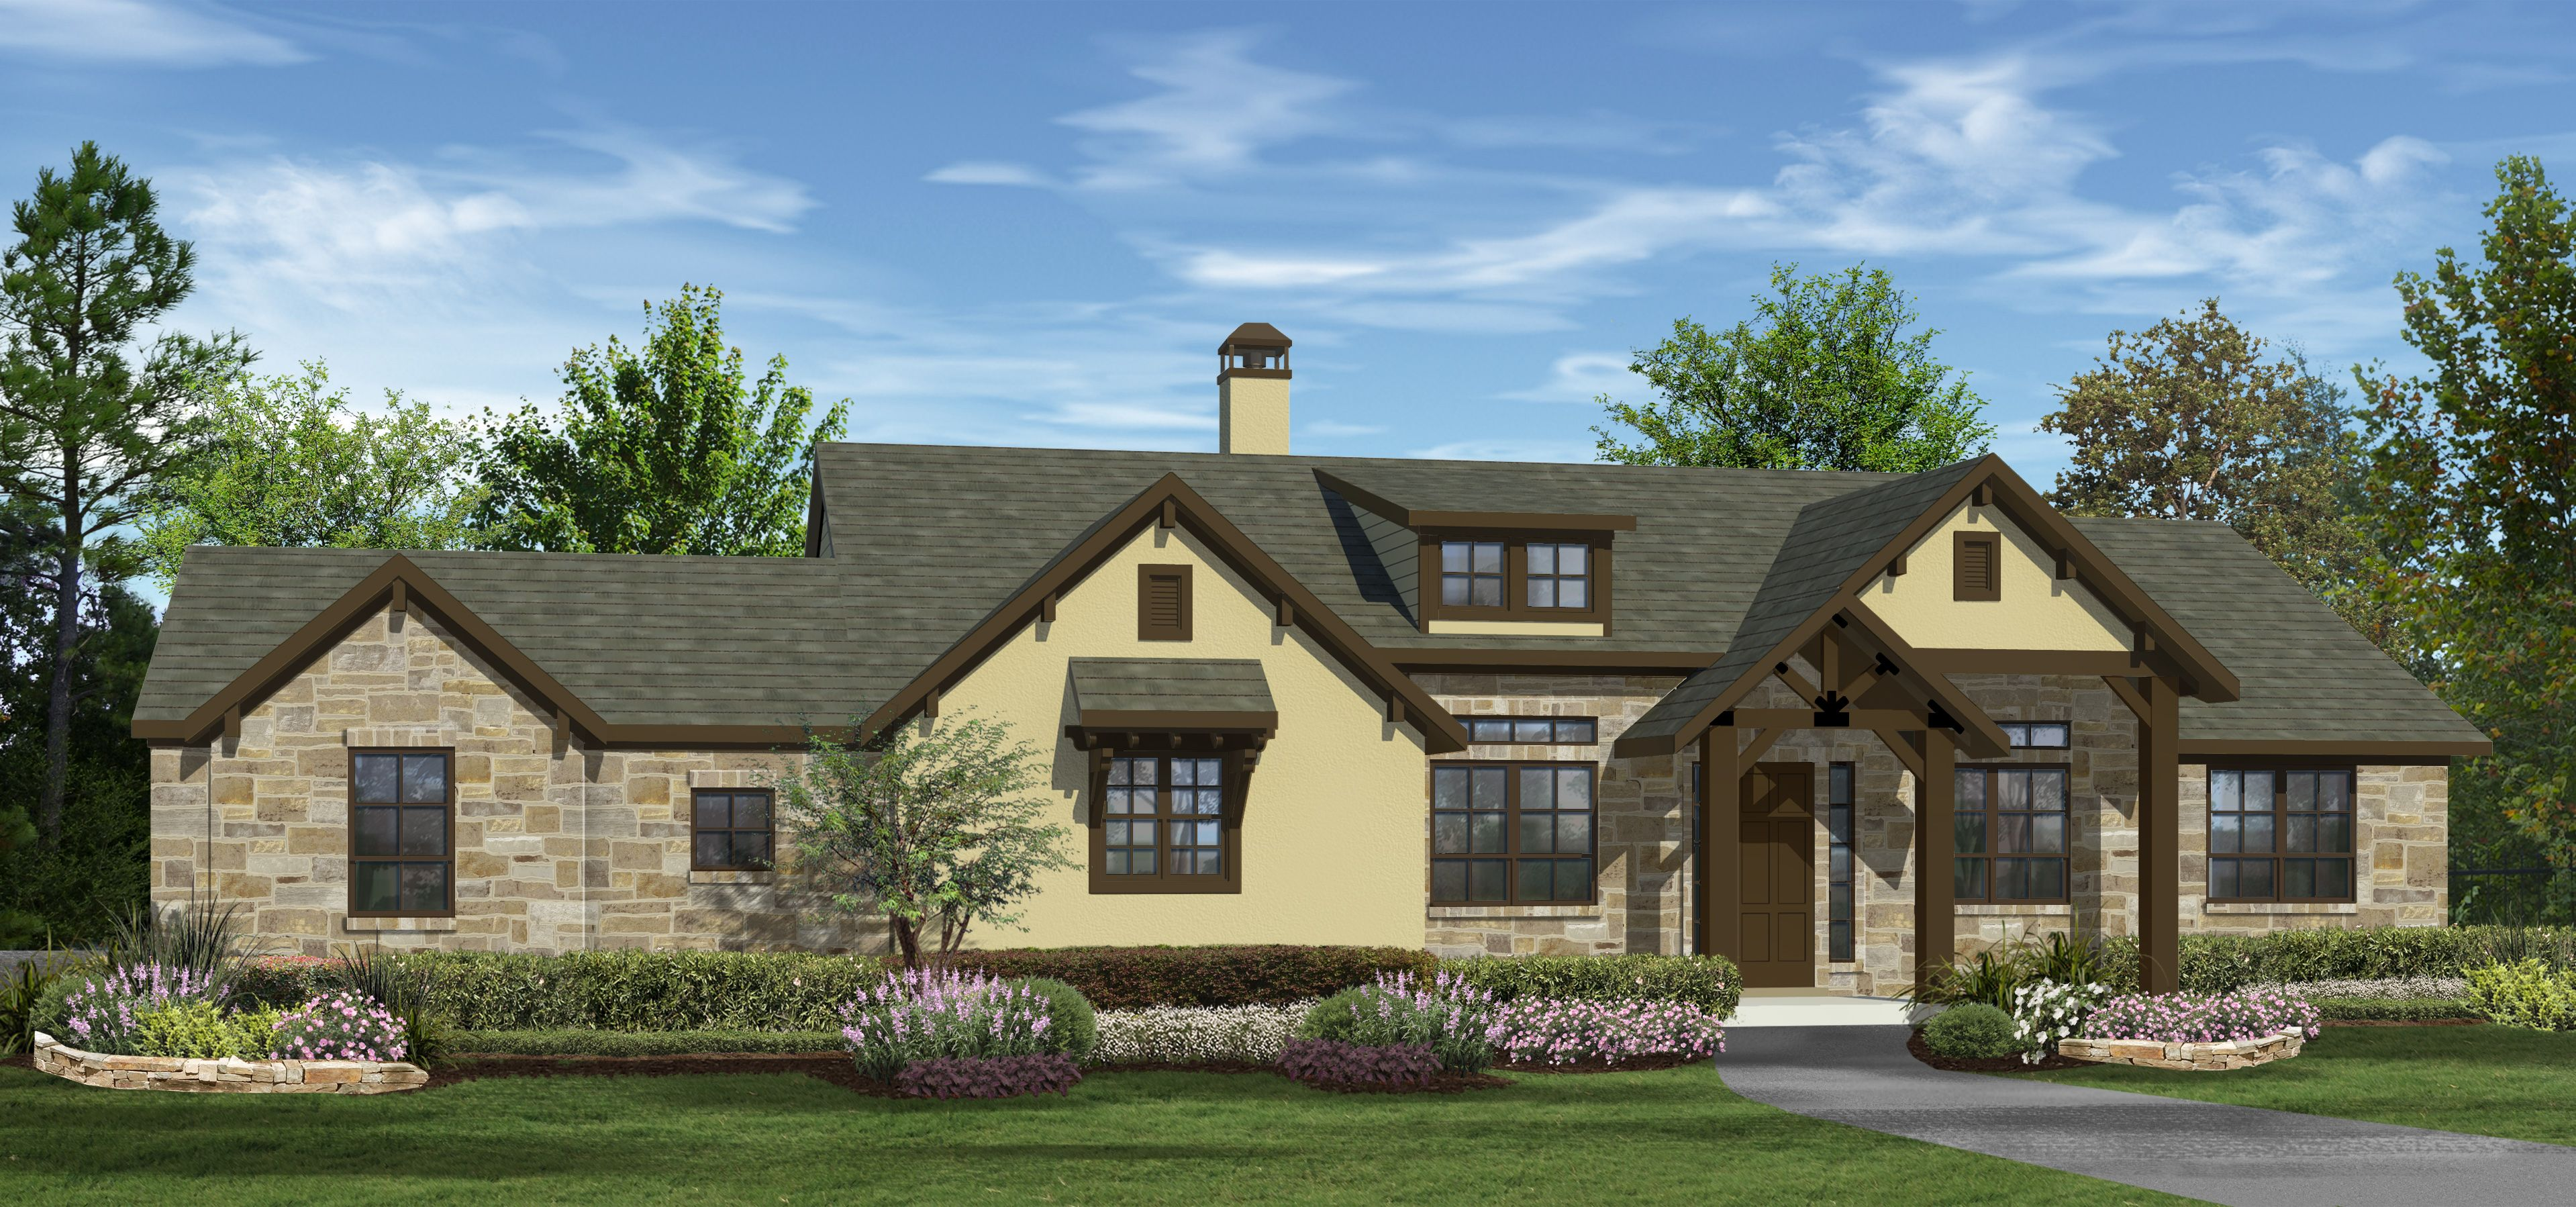 2,400 Sq Ft House Plan